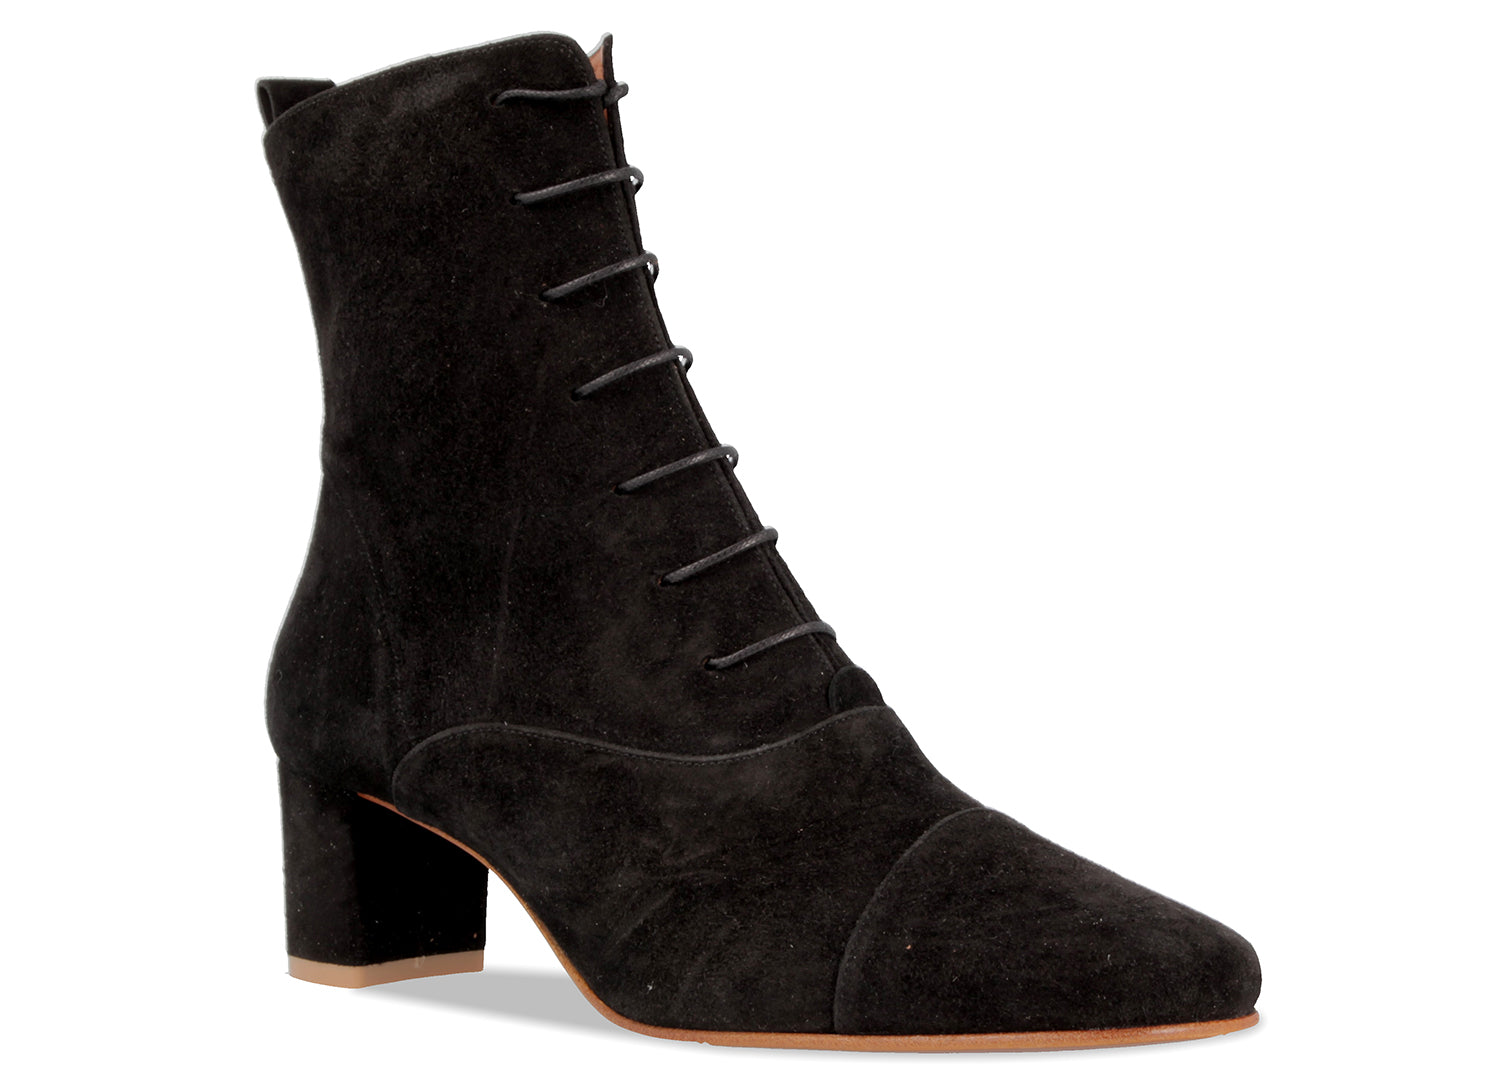 Boots By Far